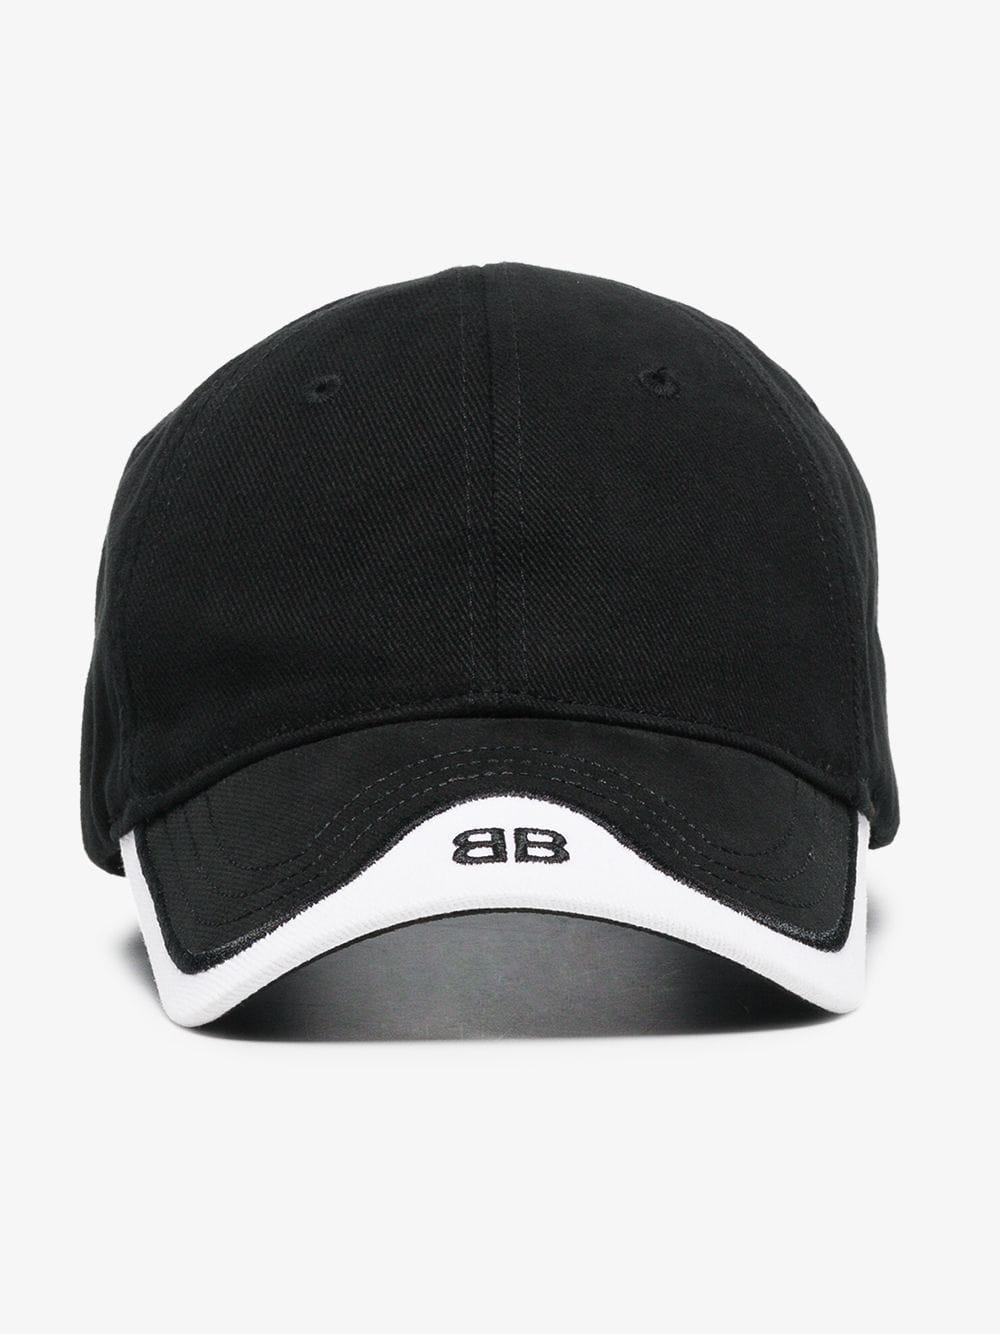 Balenciaga Black Bb Logo Cotton Peak Cap in Black for Men - Save 22 ... 06045f2451a4